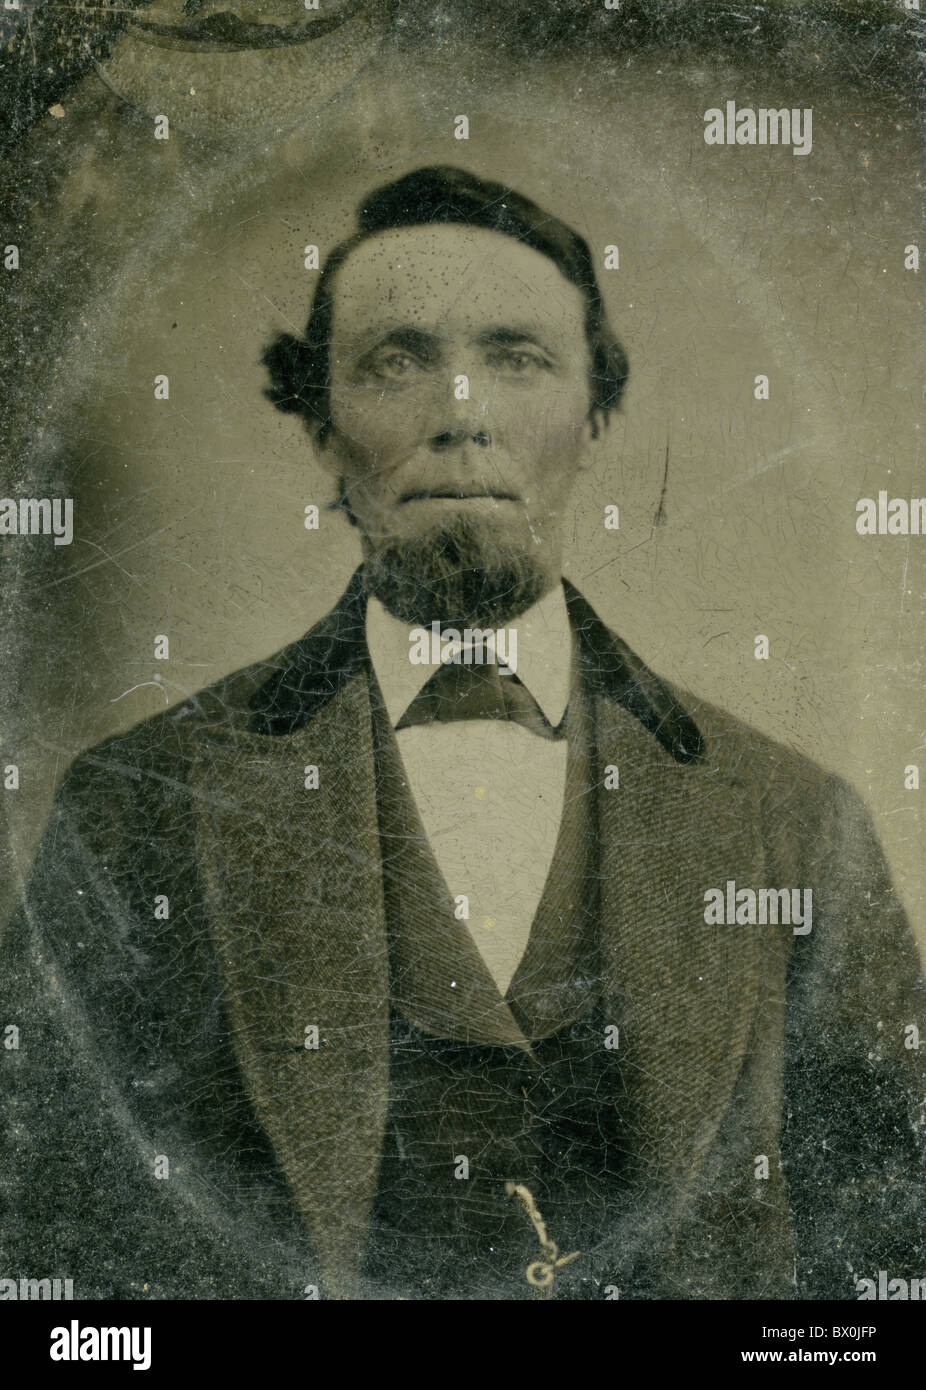 1860s man with beard coat jacket fashion portrait black and white tin type photograph vertical american americana - Stock Image